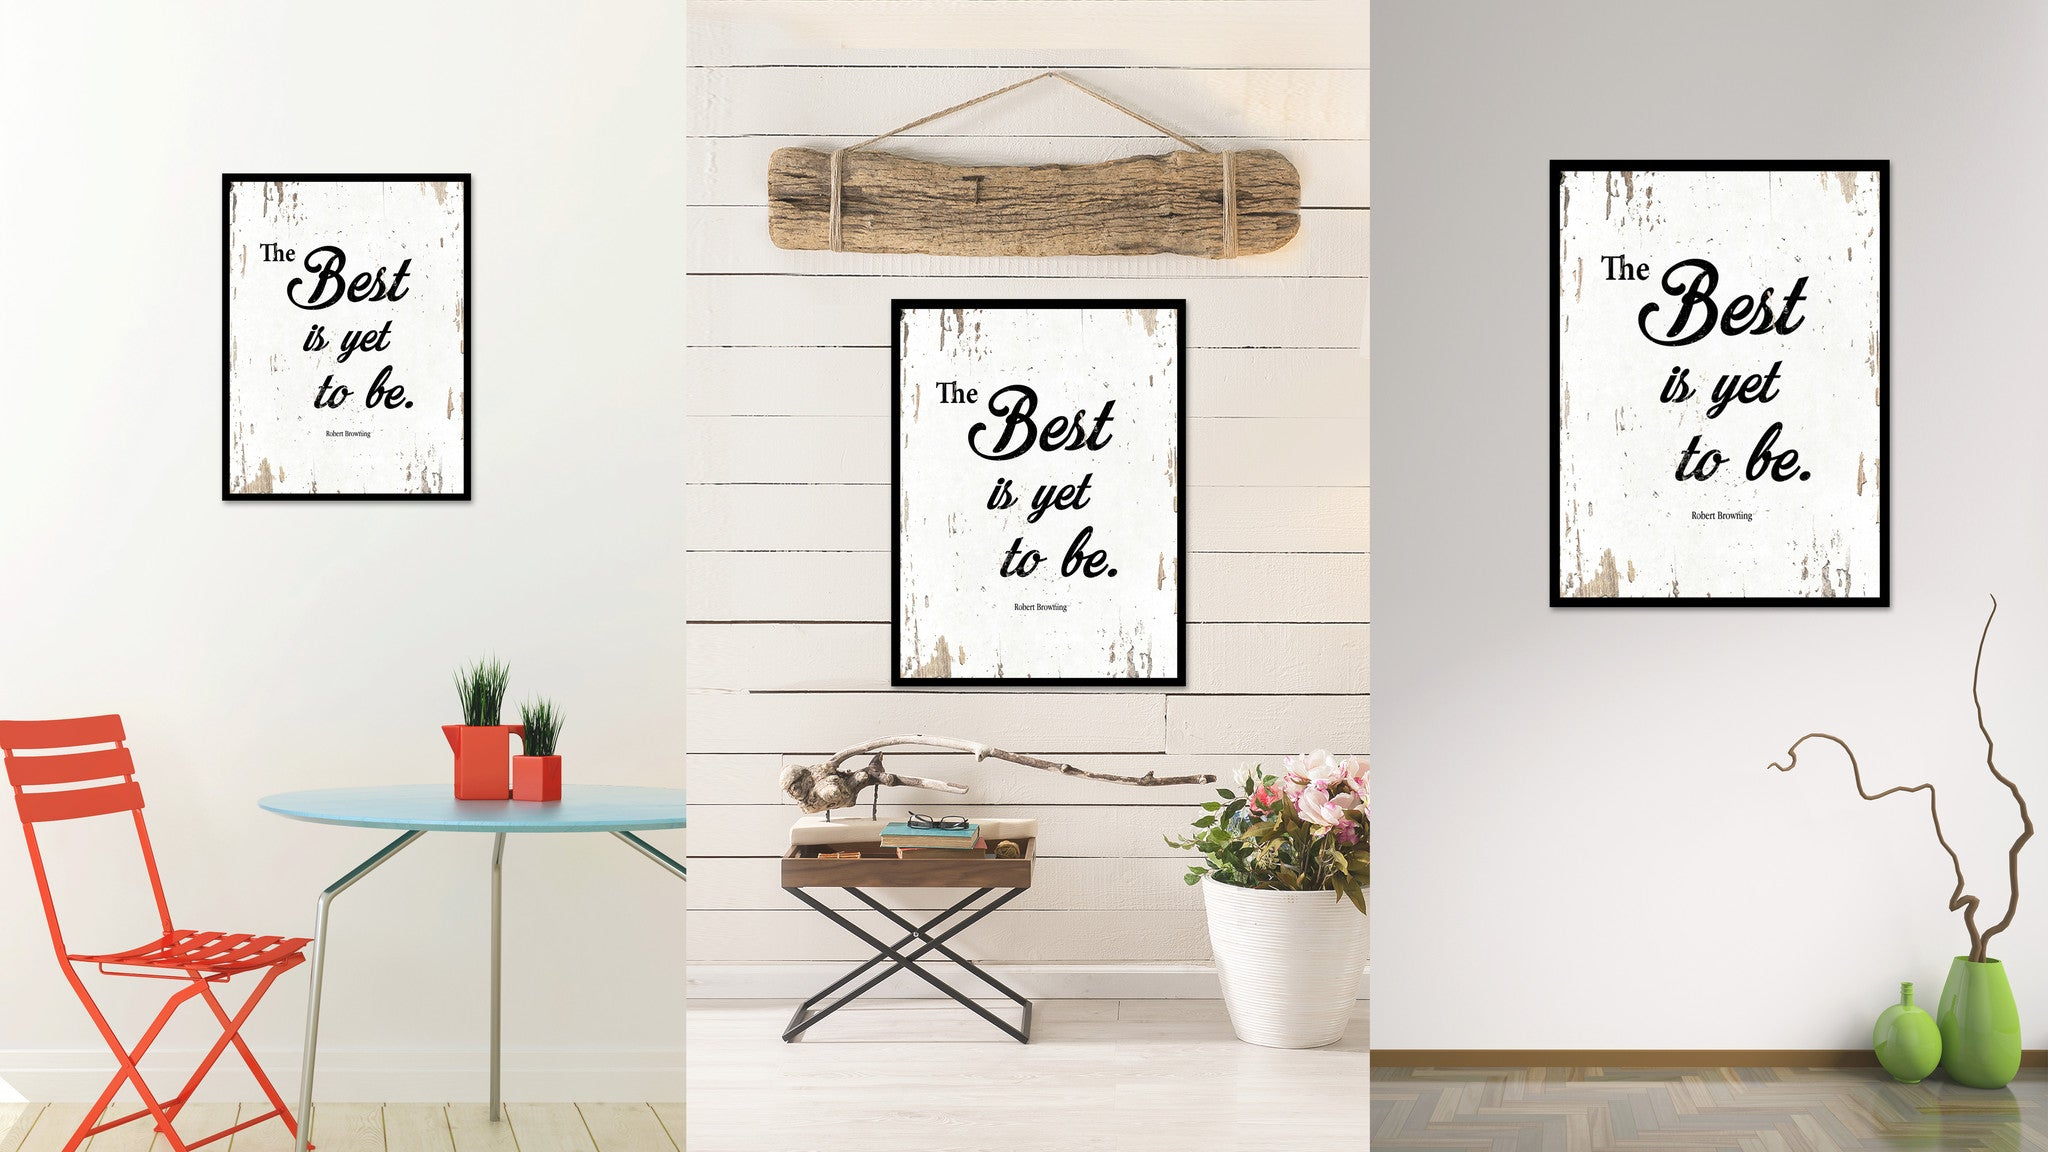 The Best Is Yet To Be Robert Browning Quote Saying Home Decor Wall Art Gift  Ideas